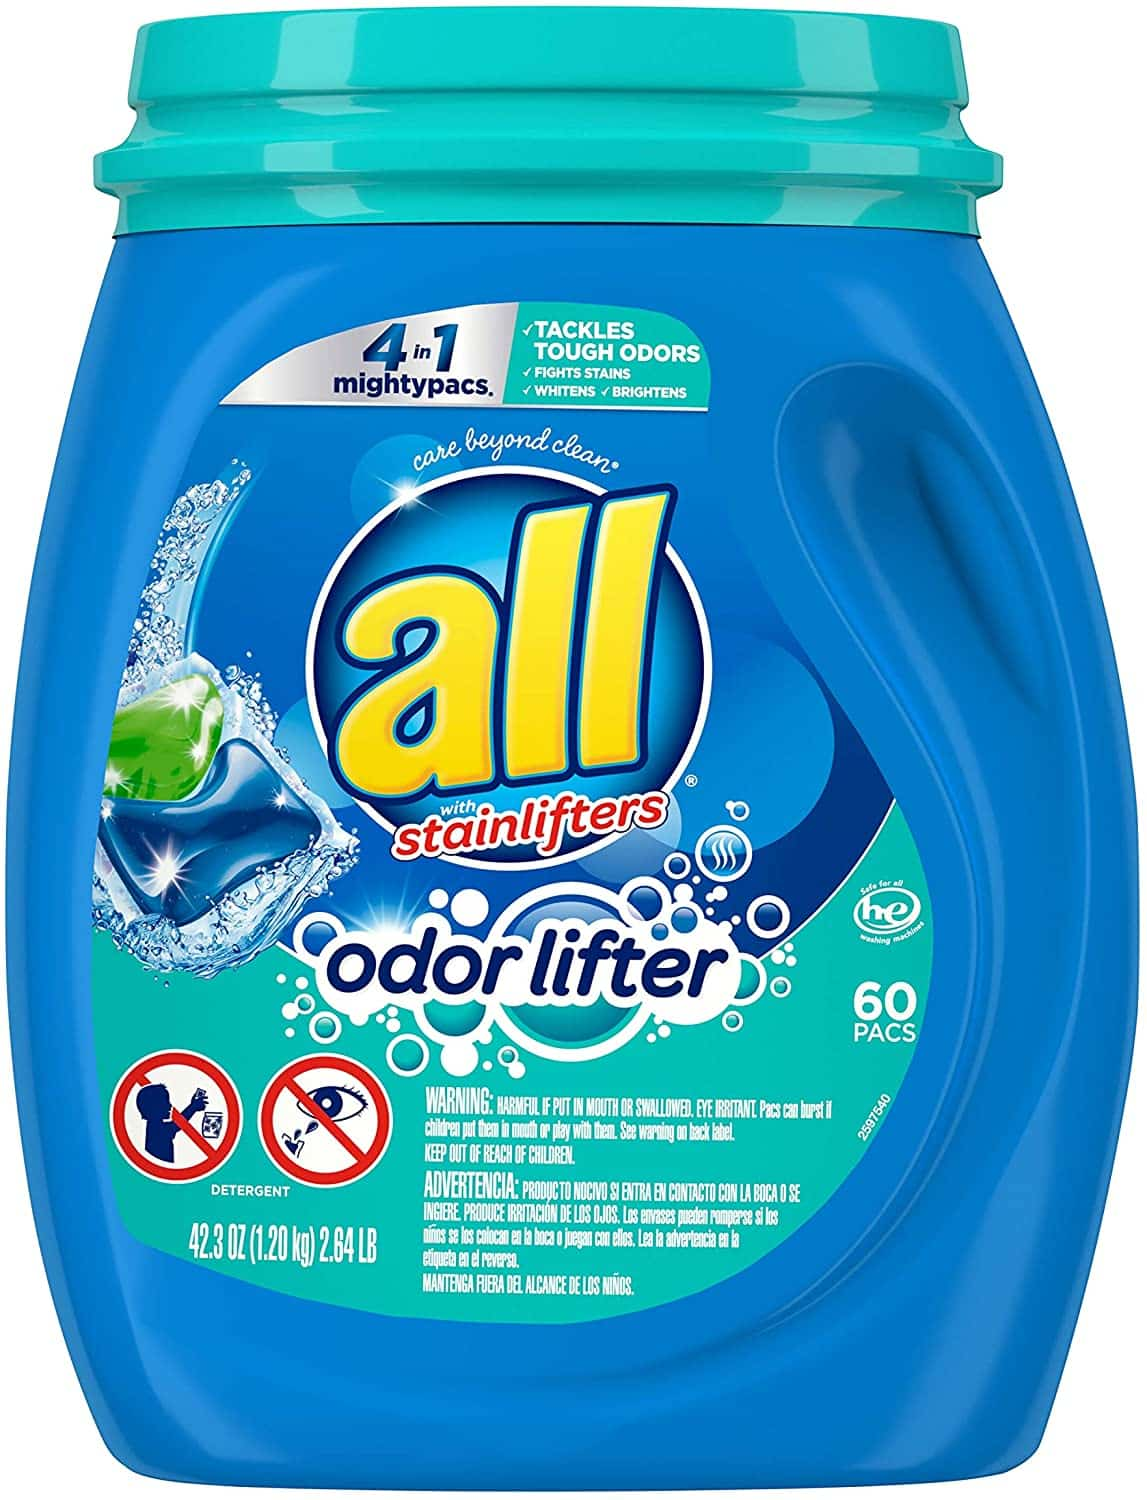 All 4-in-1 Mighty Pacs Laundry Detergent (60-Count)